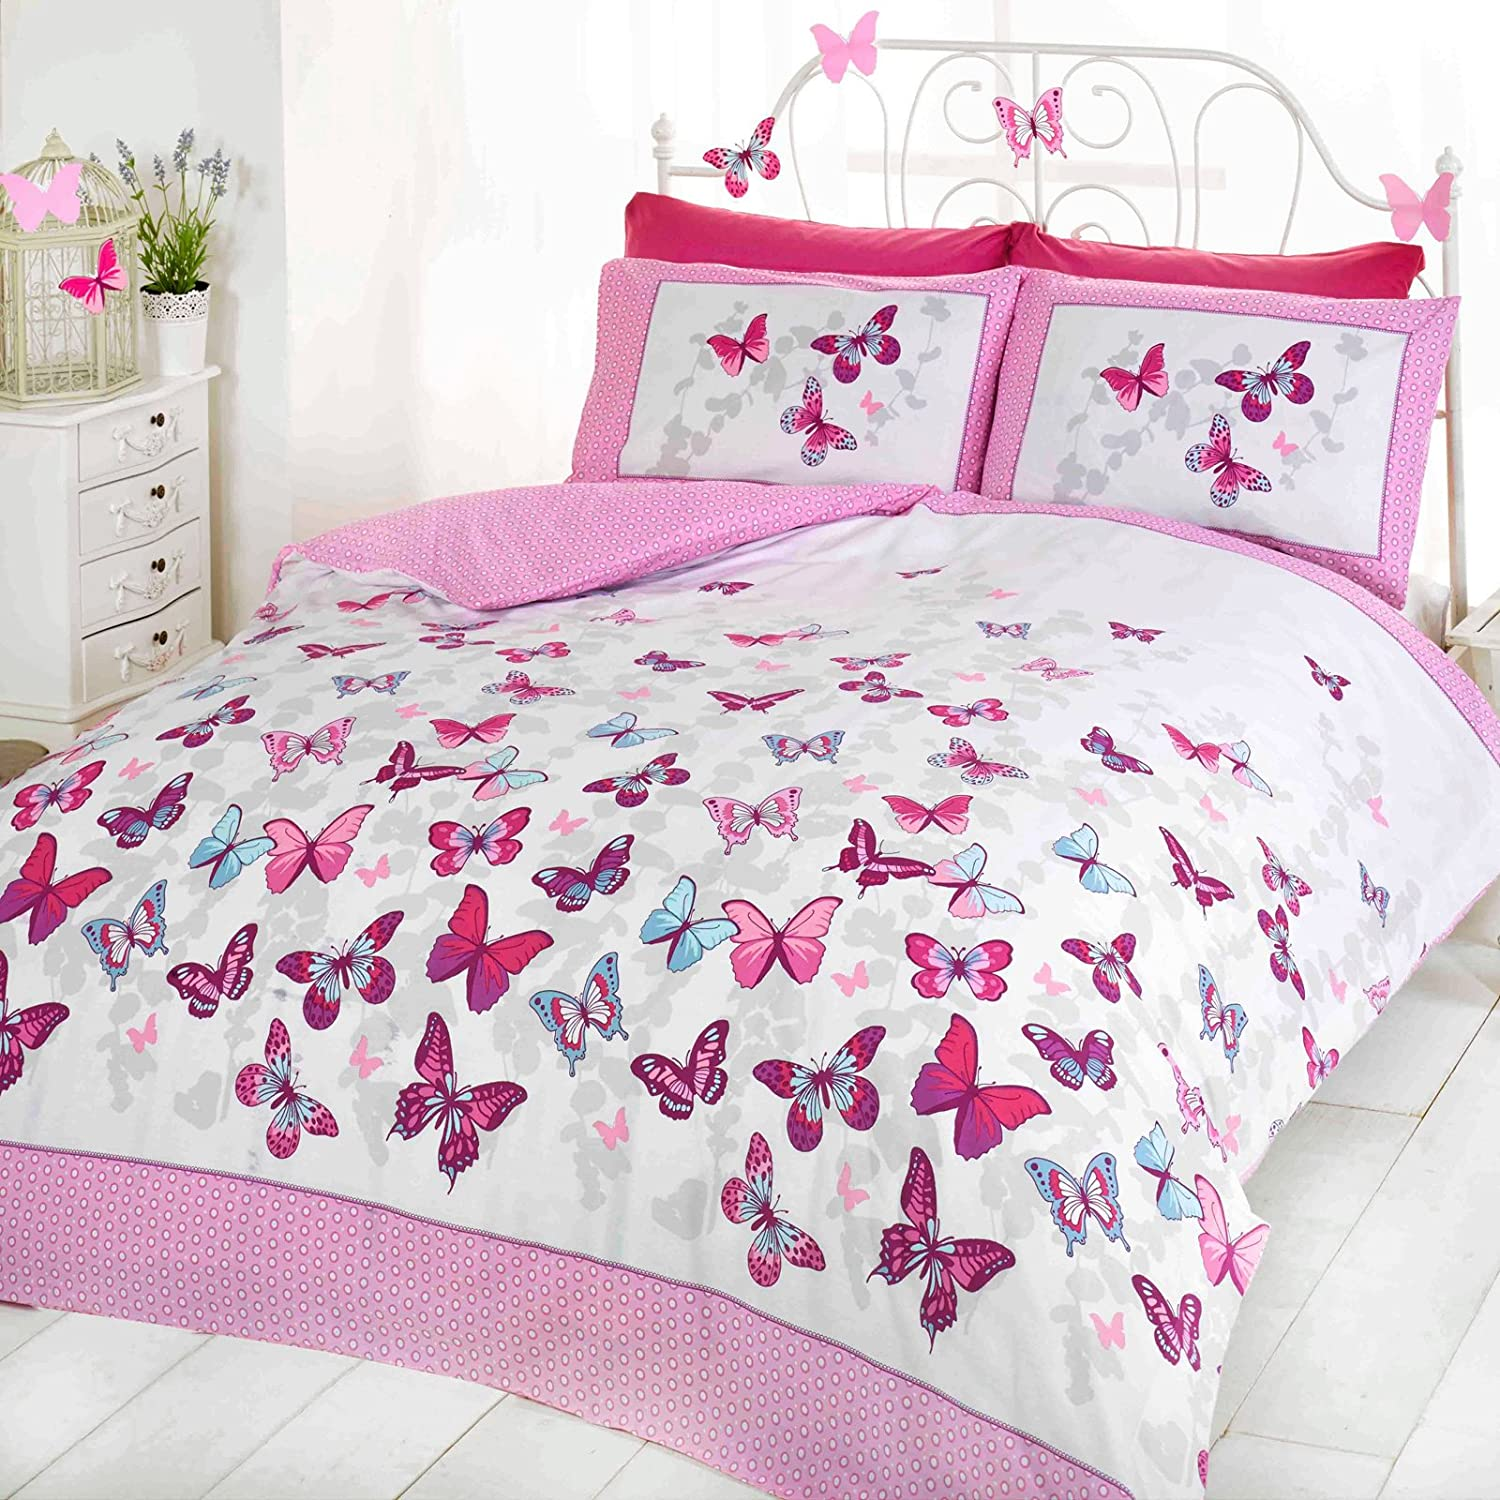 bedding comforter prod sheet gift butterfly set birthday for size girls teen itm piper twin new